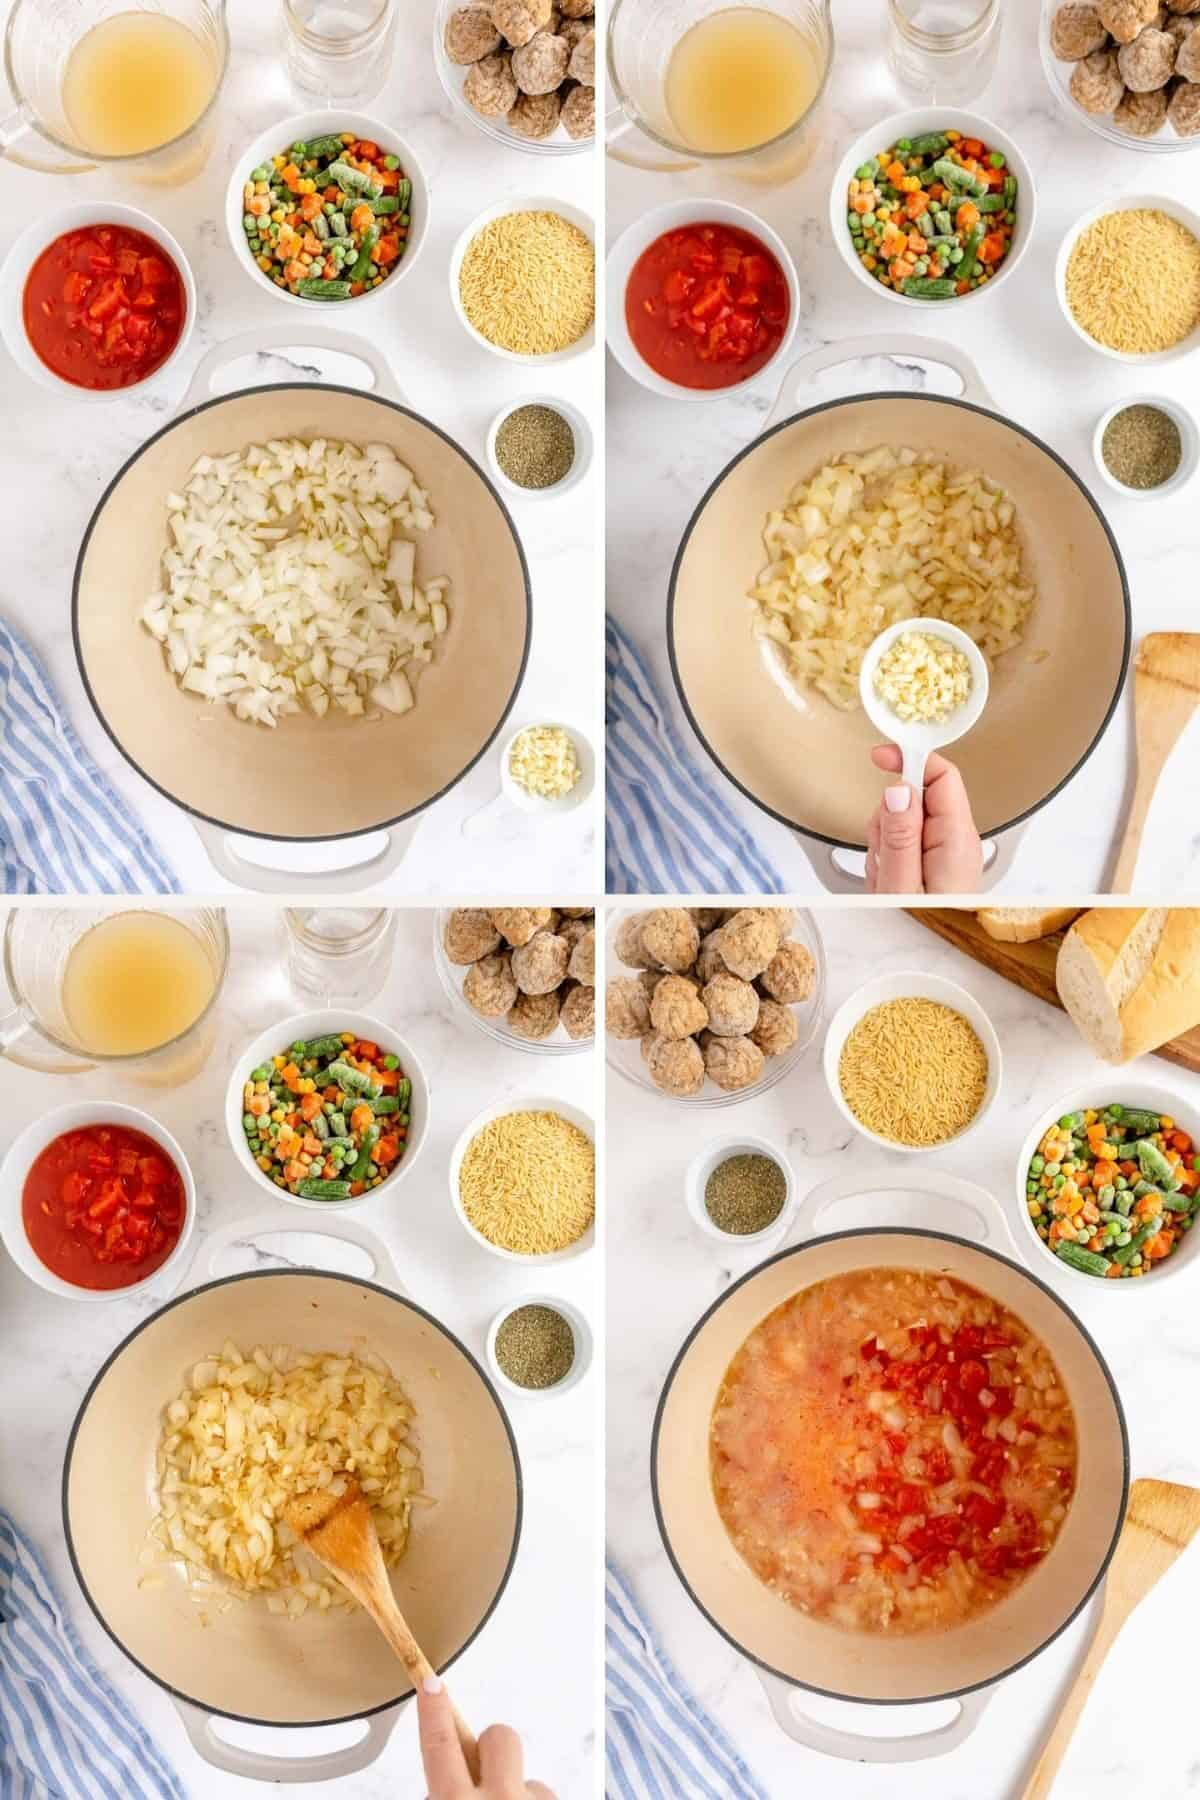 making soup step by step photos